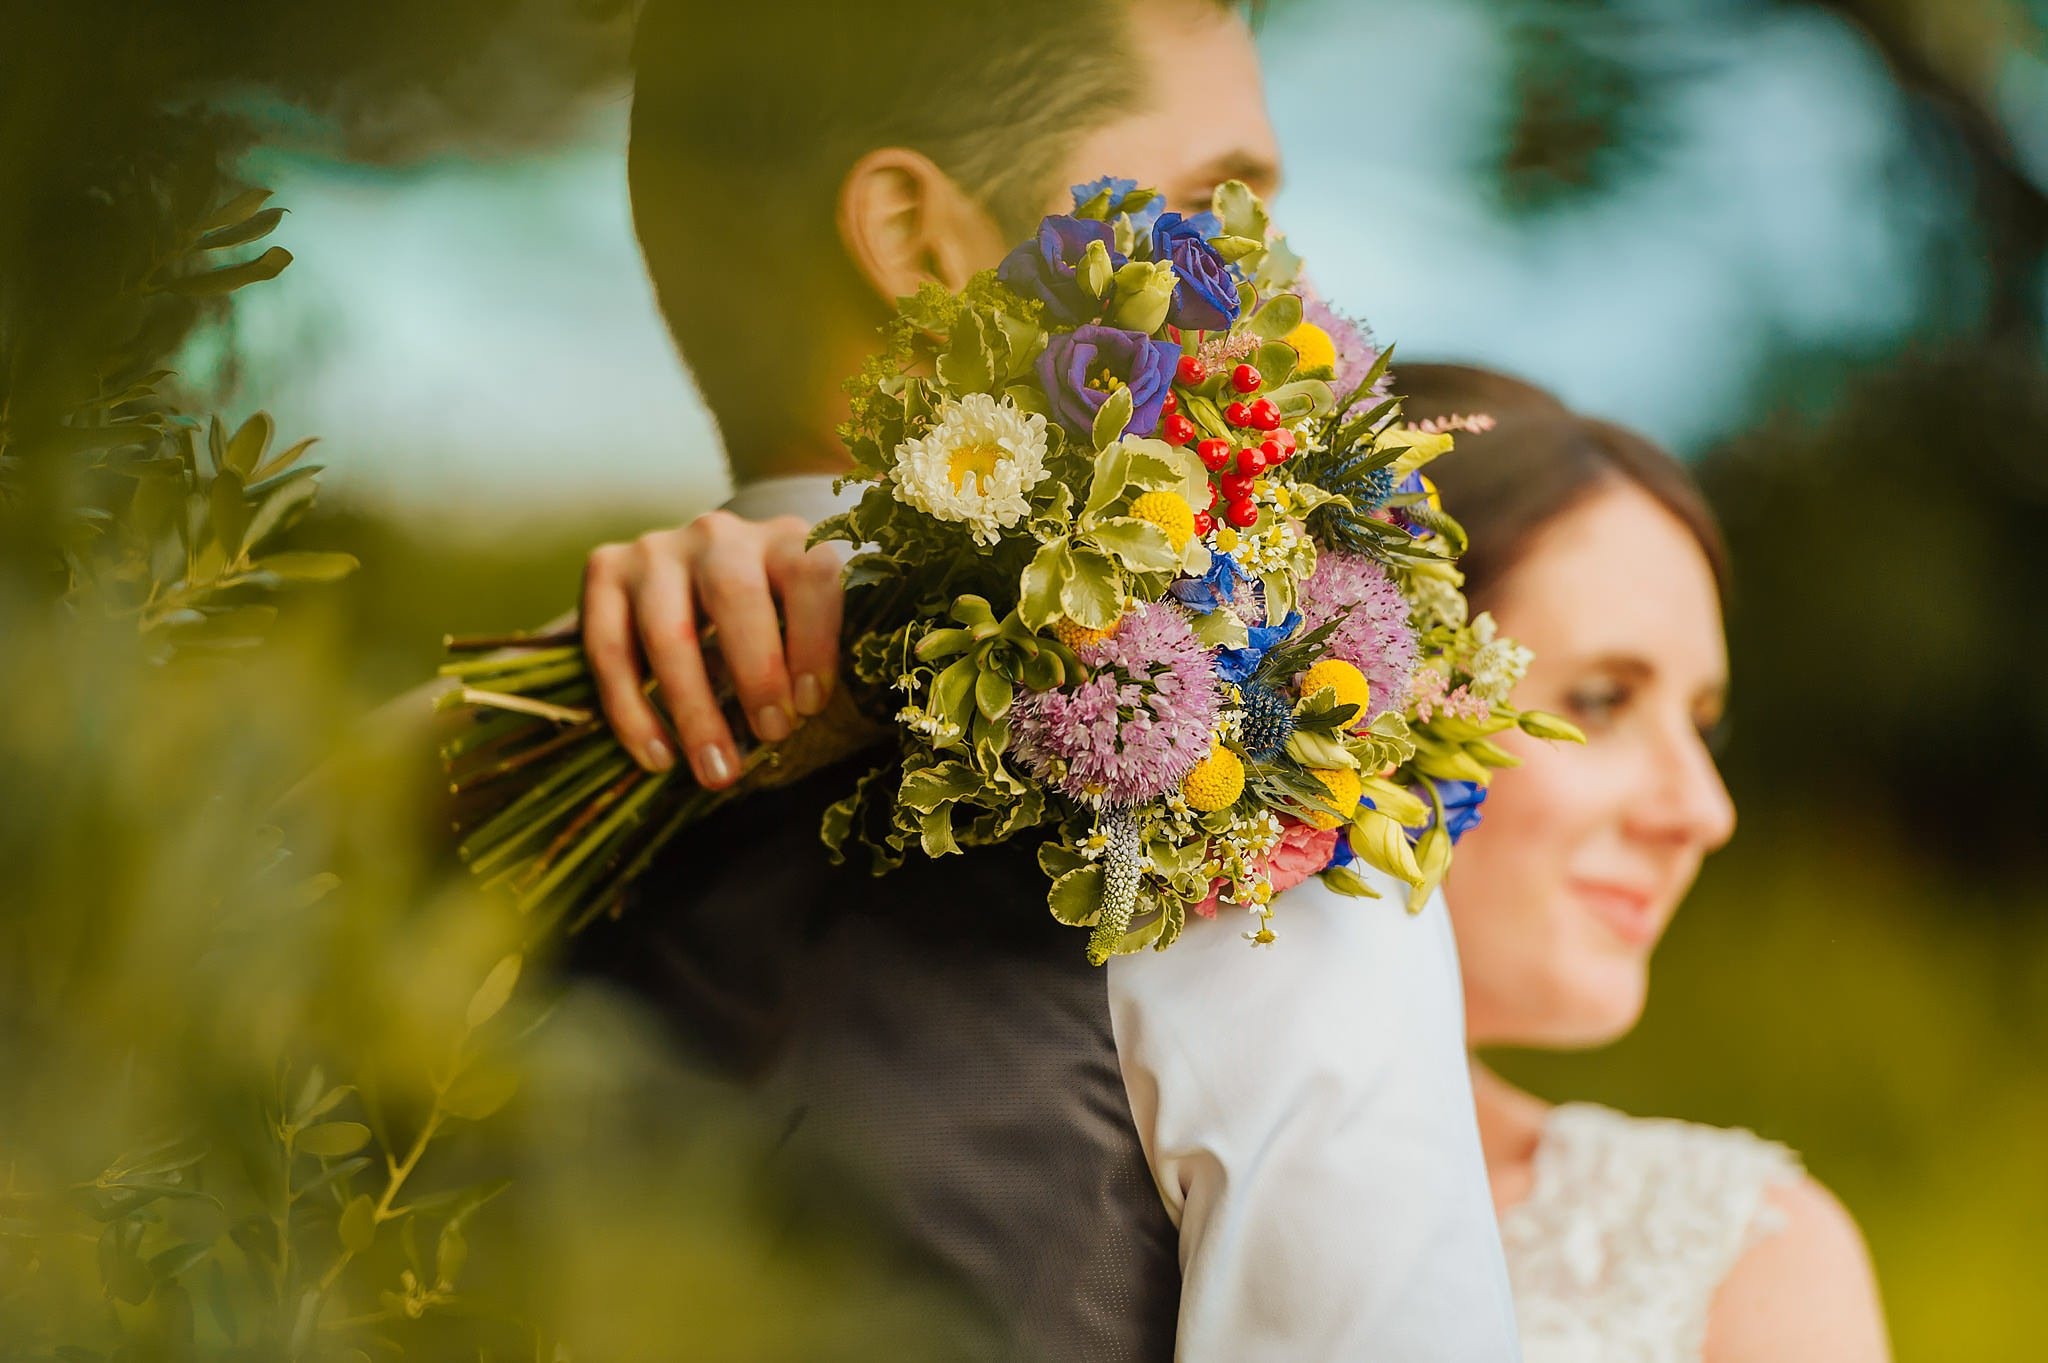 Wedding photography at Hellens Manor in Herefordshire, West Midlands | Shelley + Ian 130